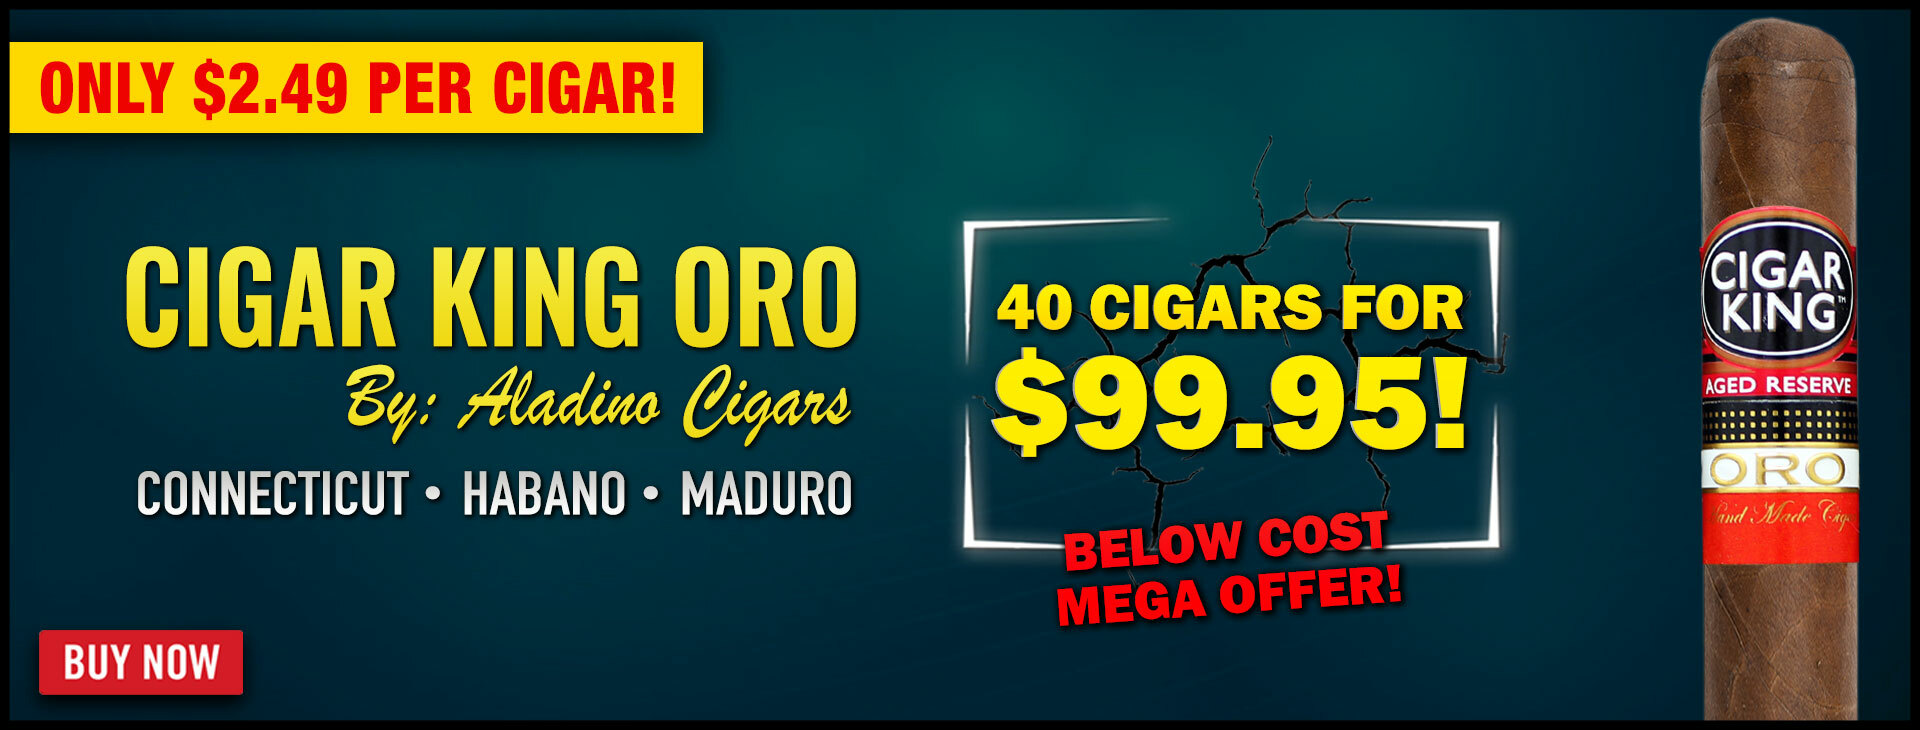 CIGAR KING ORO BY ALADINO - 75% OFF!